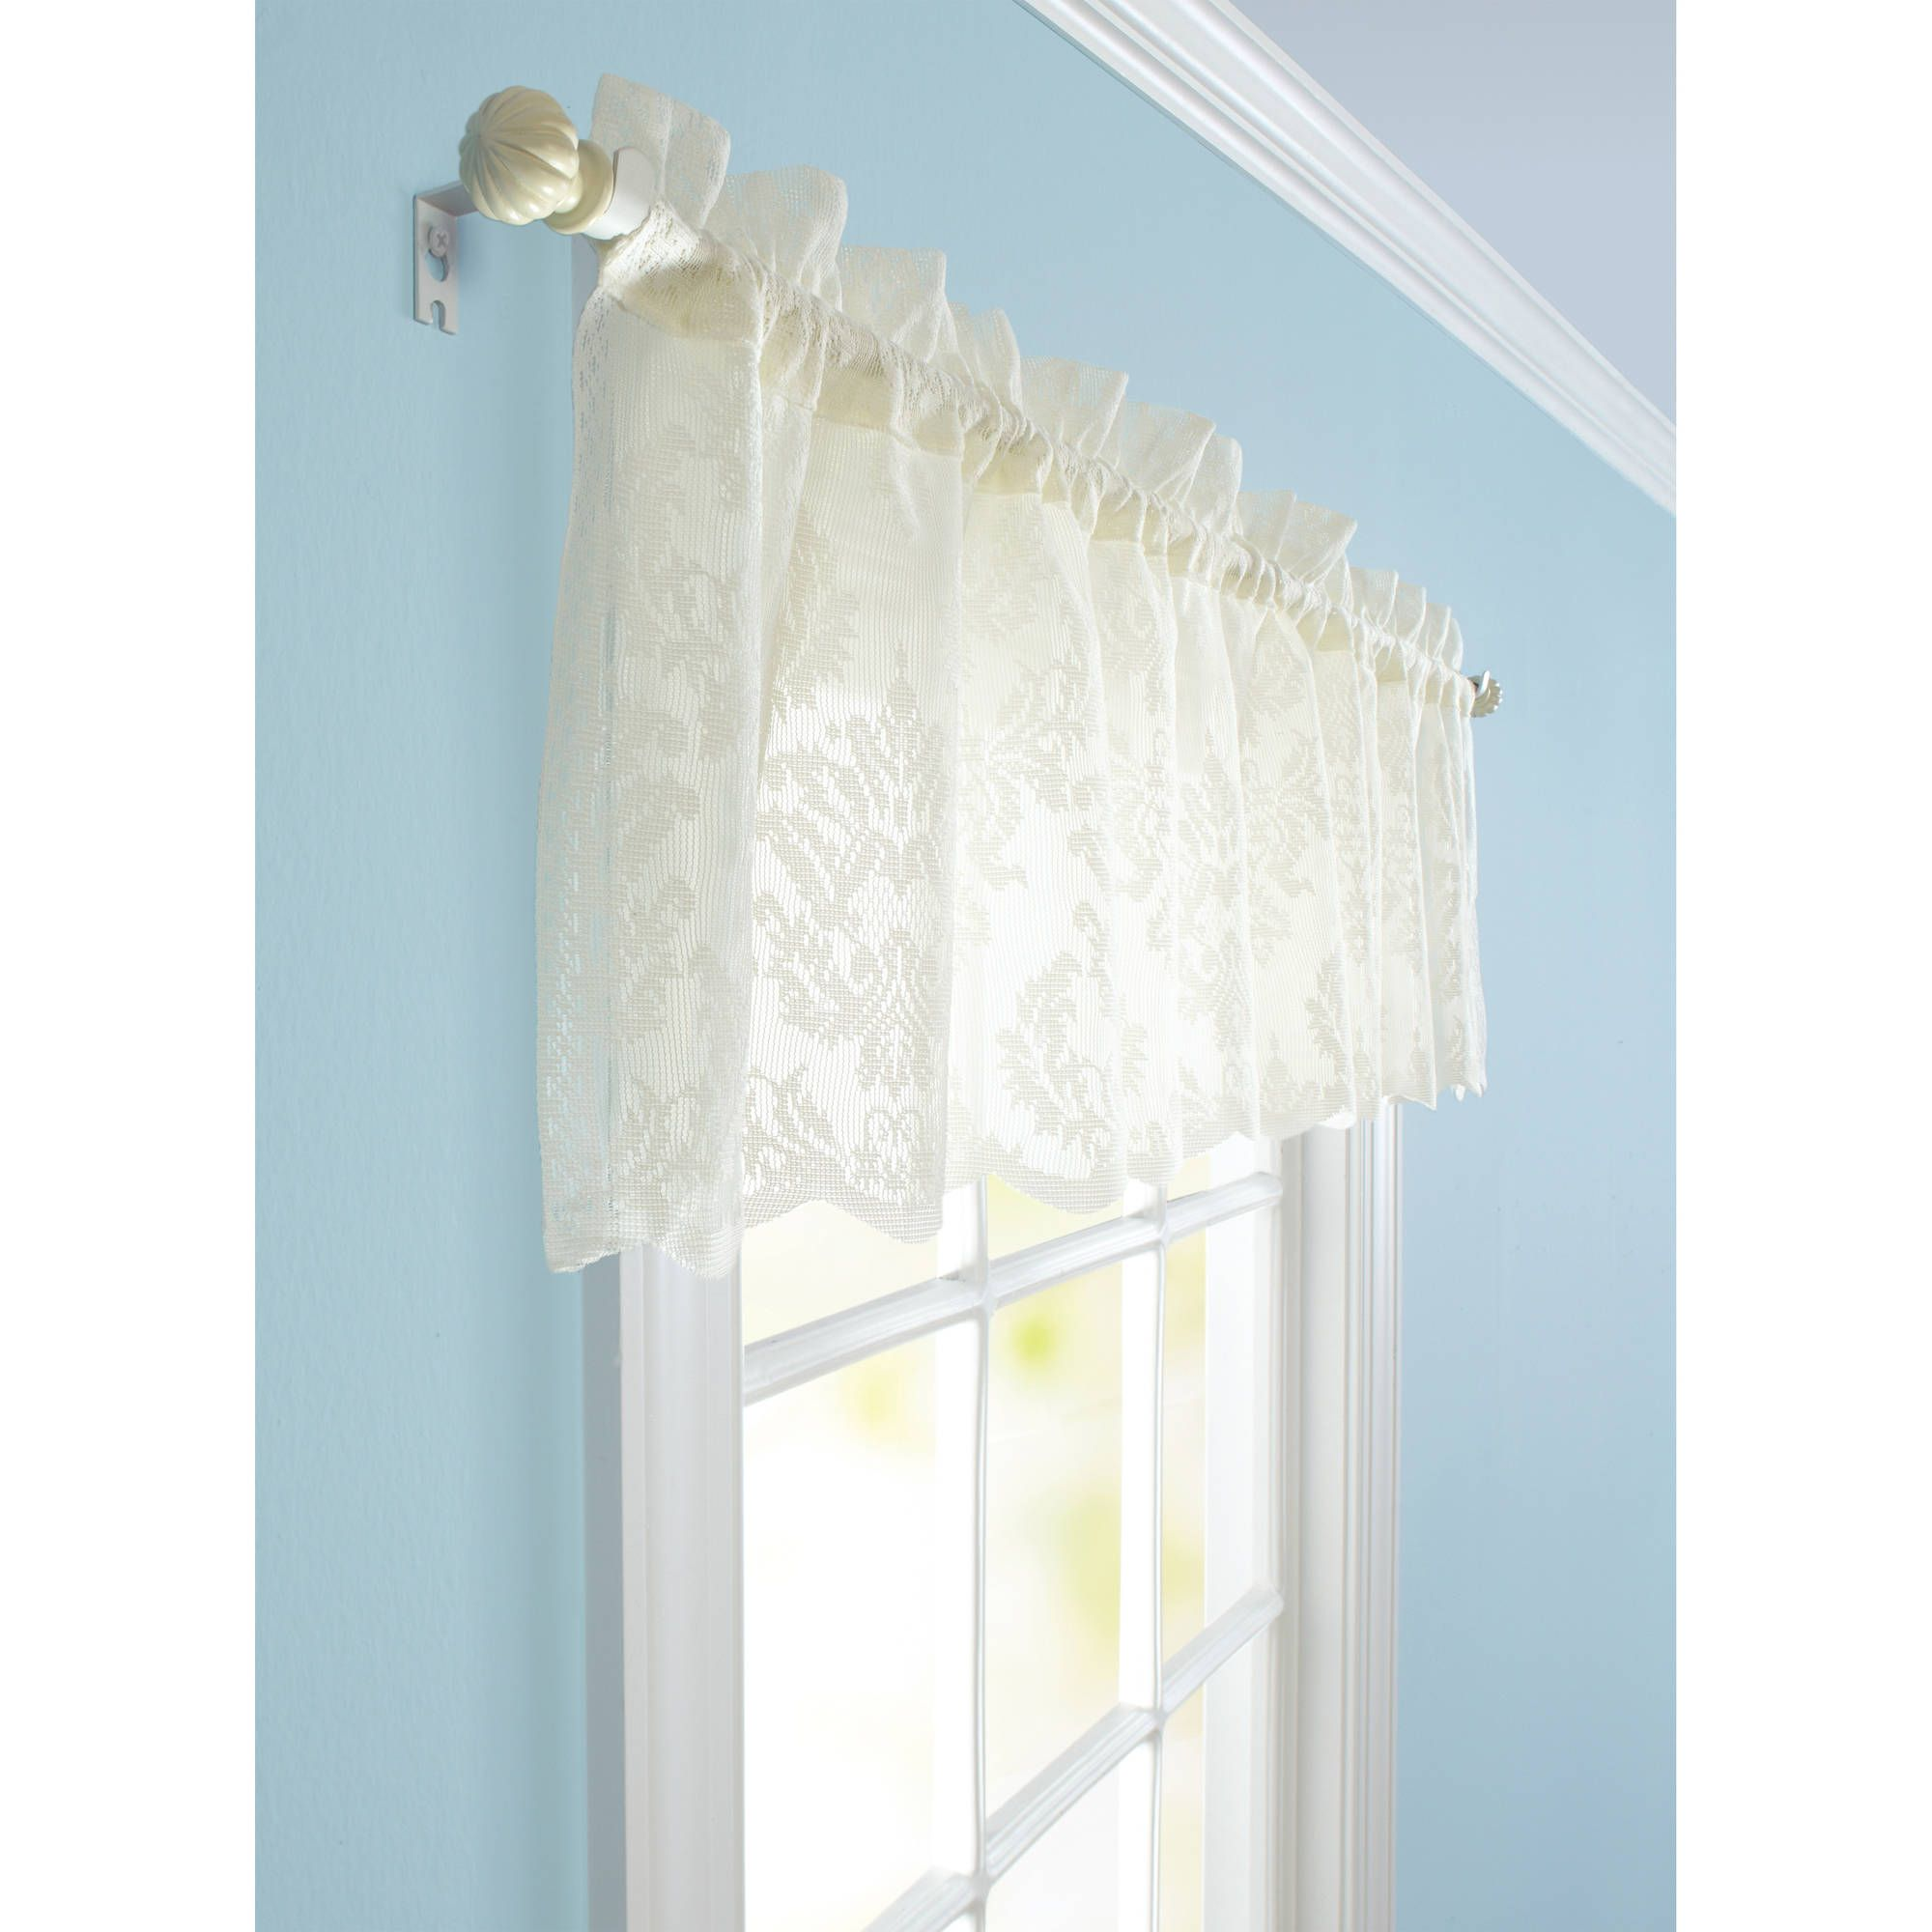 671336bcda35748ceb2a8315907c30f9 - Better Homes And Gardens Ivy Kitchen Curtain Set